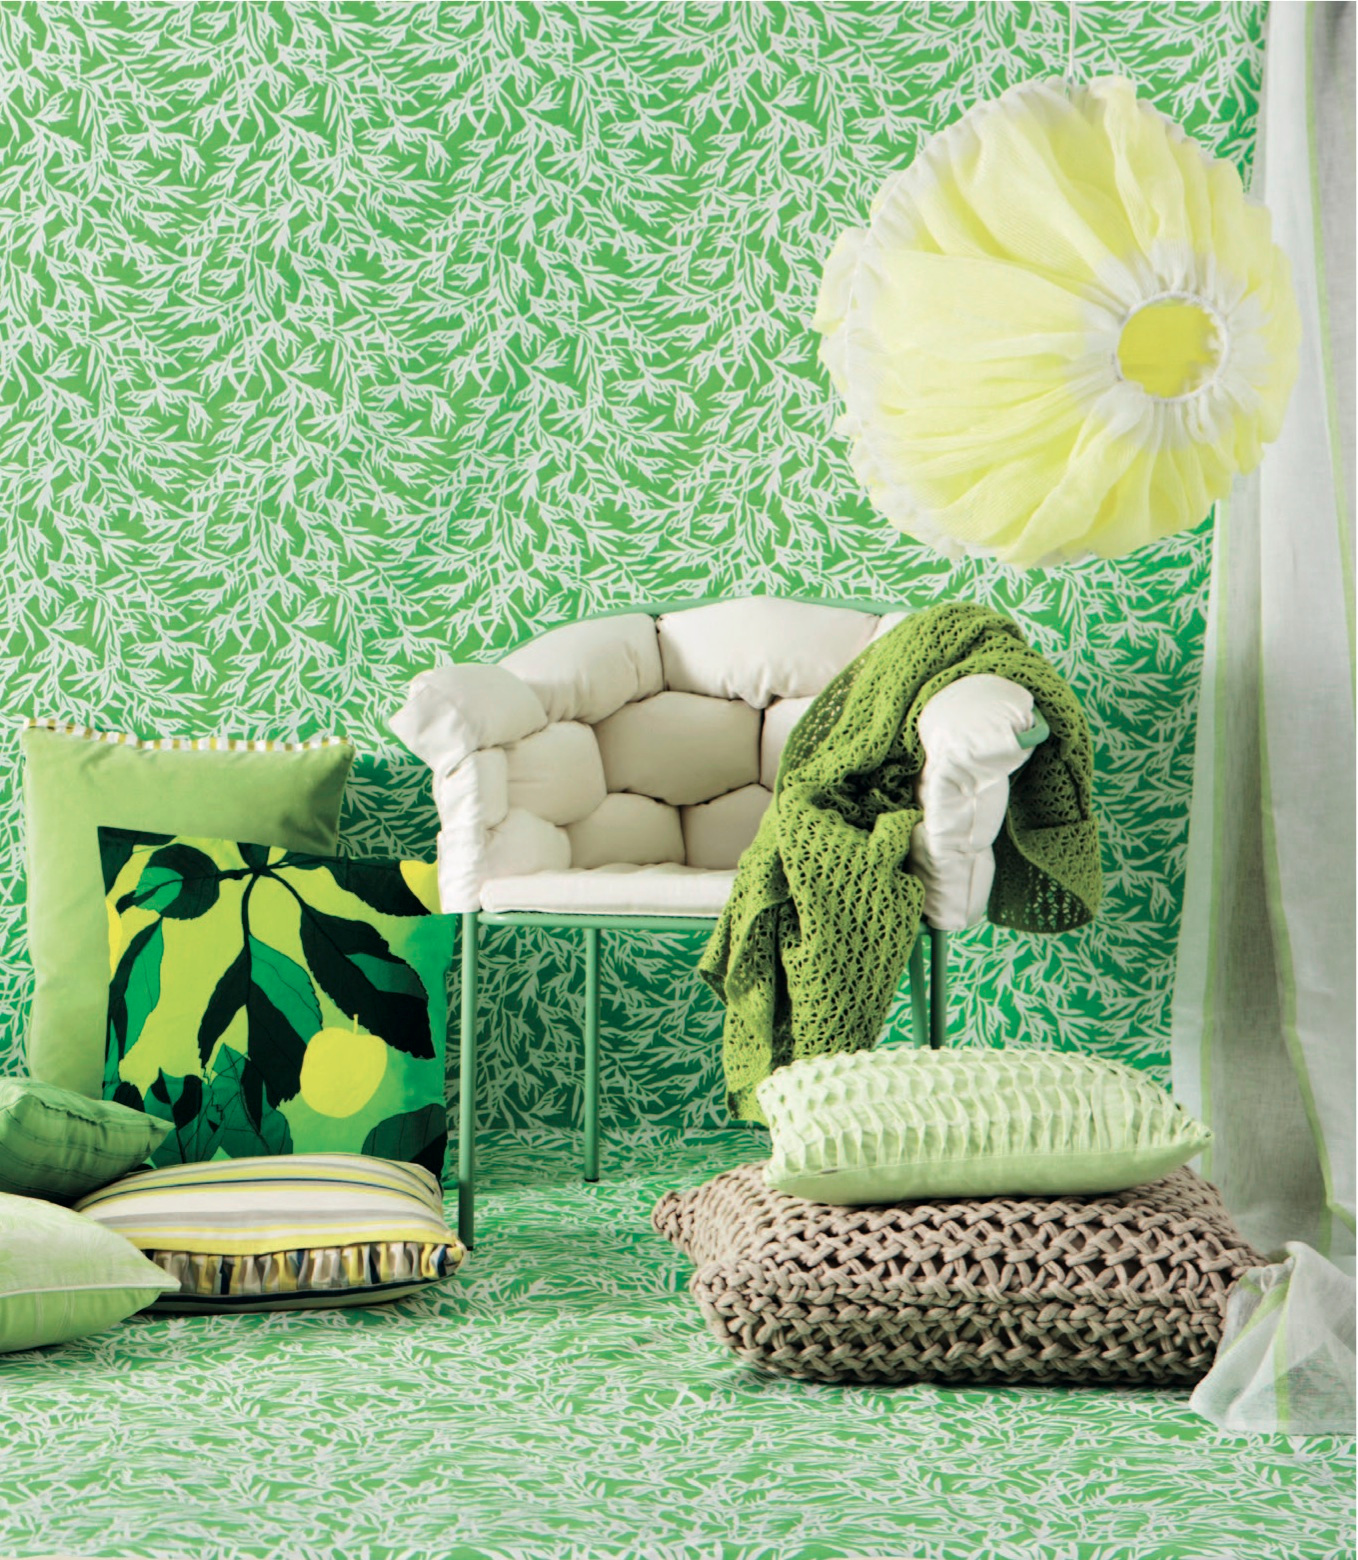 COLORS MAKE JOYFUL LIVING - -use color to impact the mood of your home and mindelinacolors